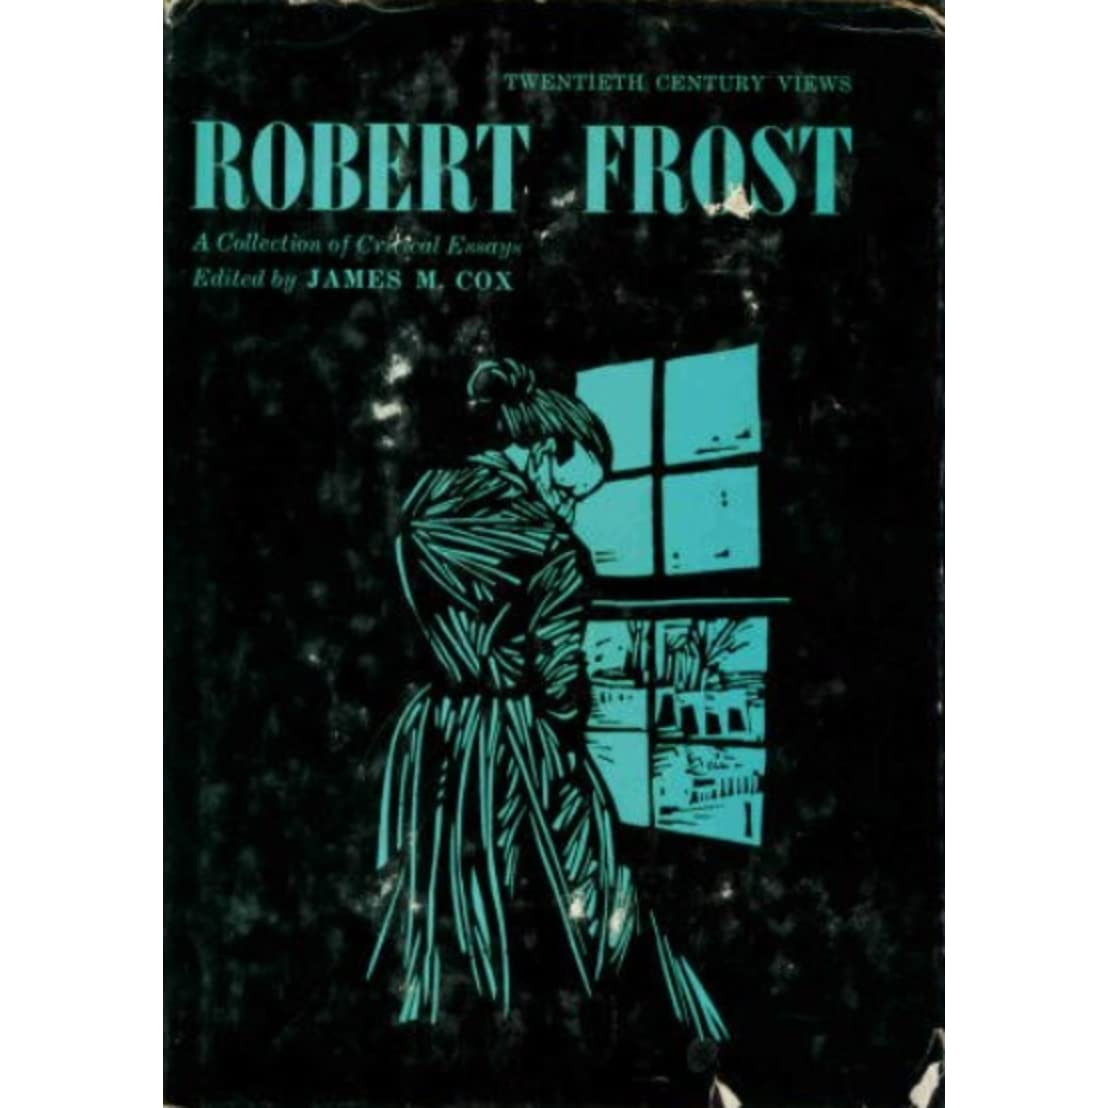 robert frost a collection of critical essays by robert frost robert frost a collection of critical essays by robert frost reviews discussion bookclubs lists